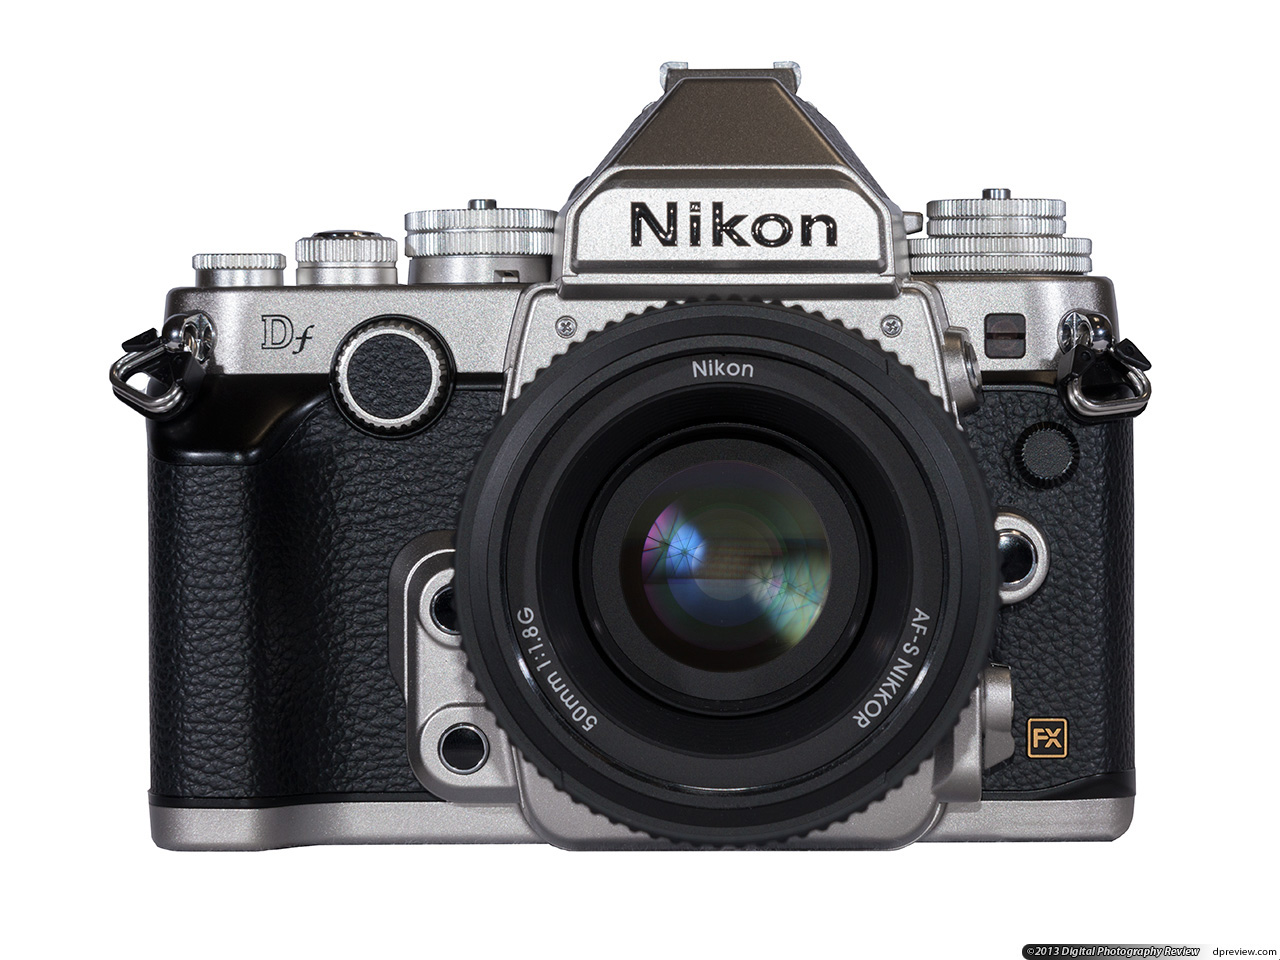 Review based on a production Nikon Df